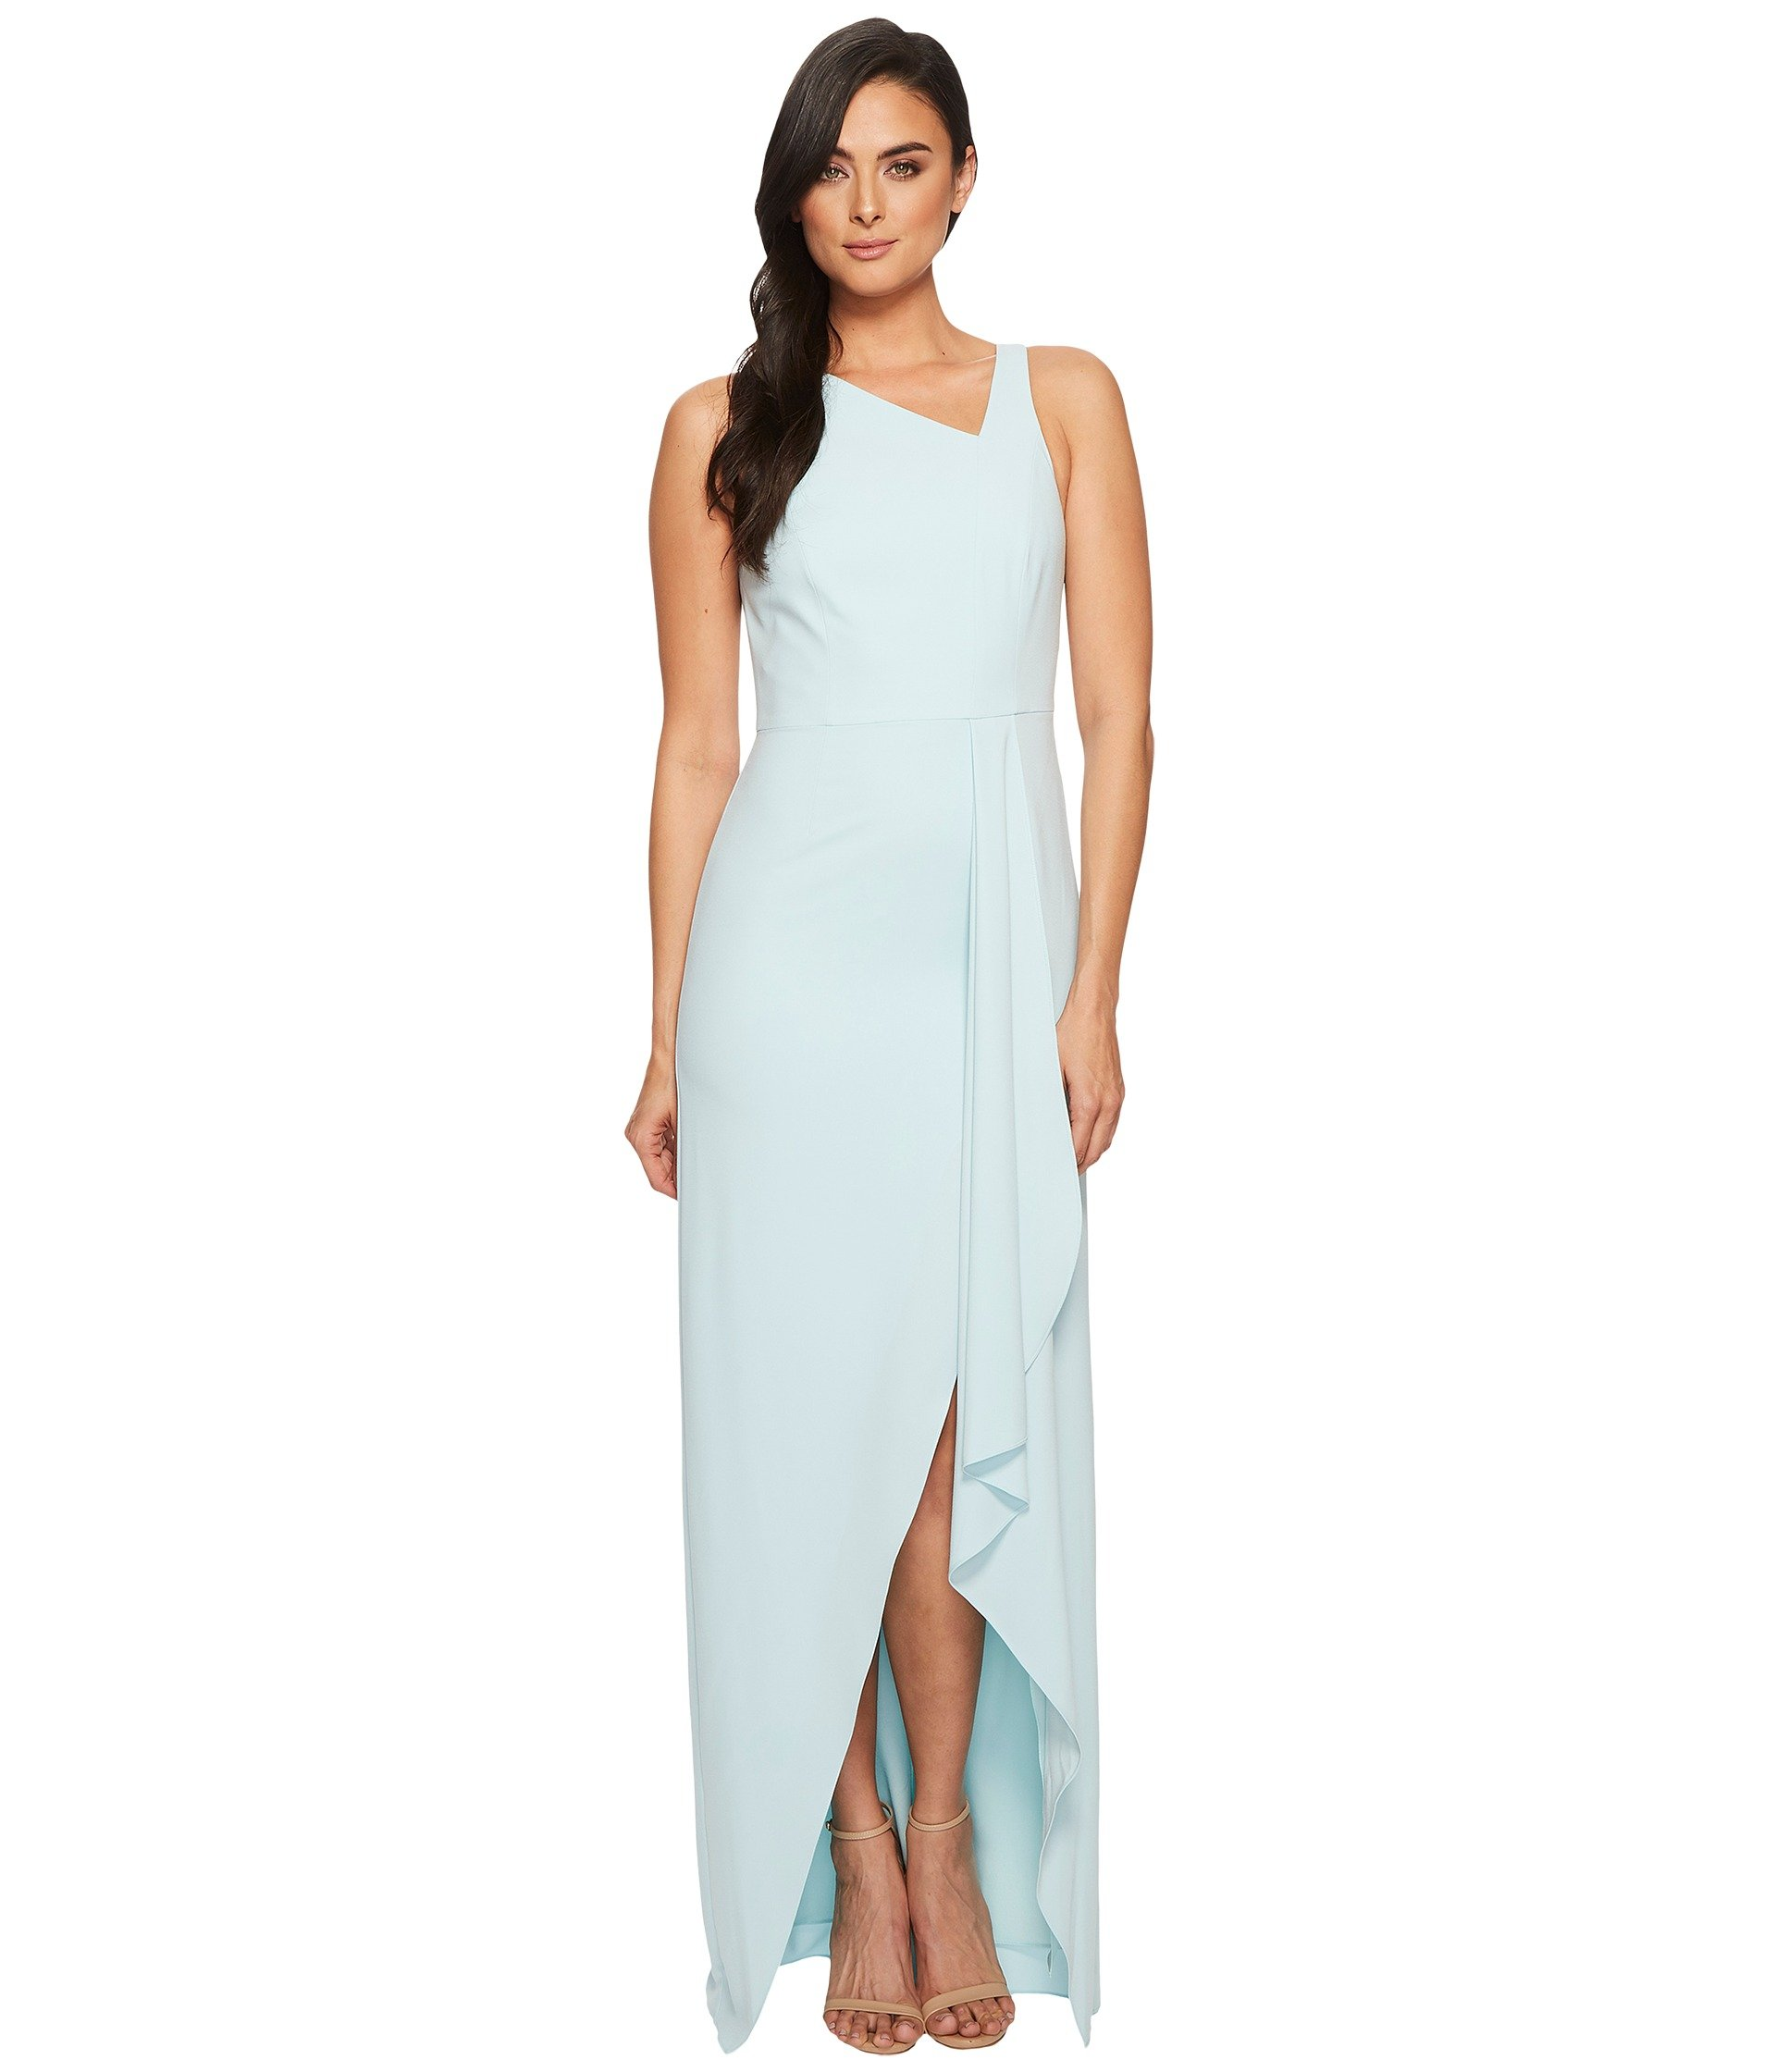 Halston heritage strapless dress with flowy drape | Shipped Free at ...